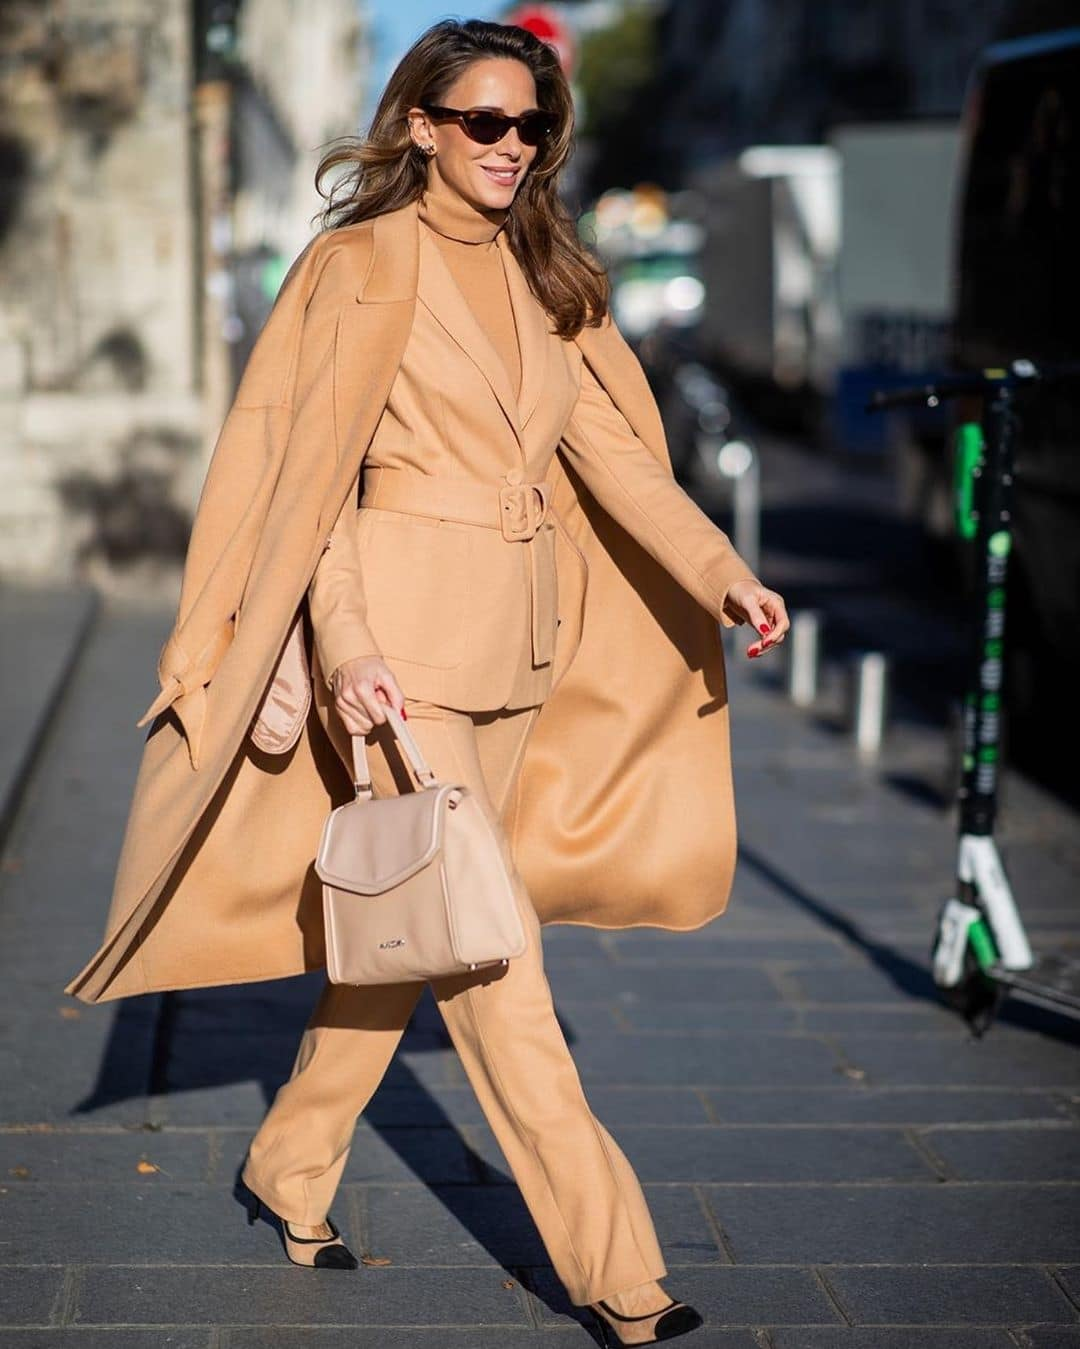 alexandra-lapp-15-looks-that-prove-that-camel-tones-are-the-hottest-shades-of-the-season